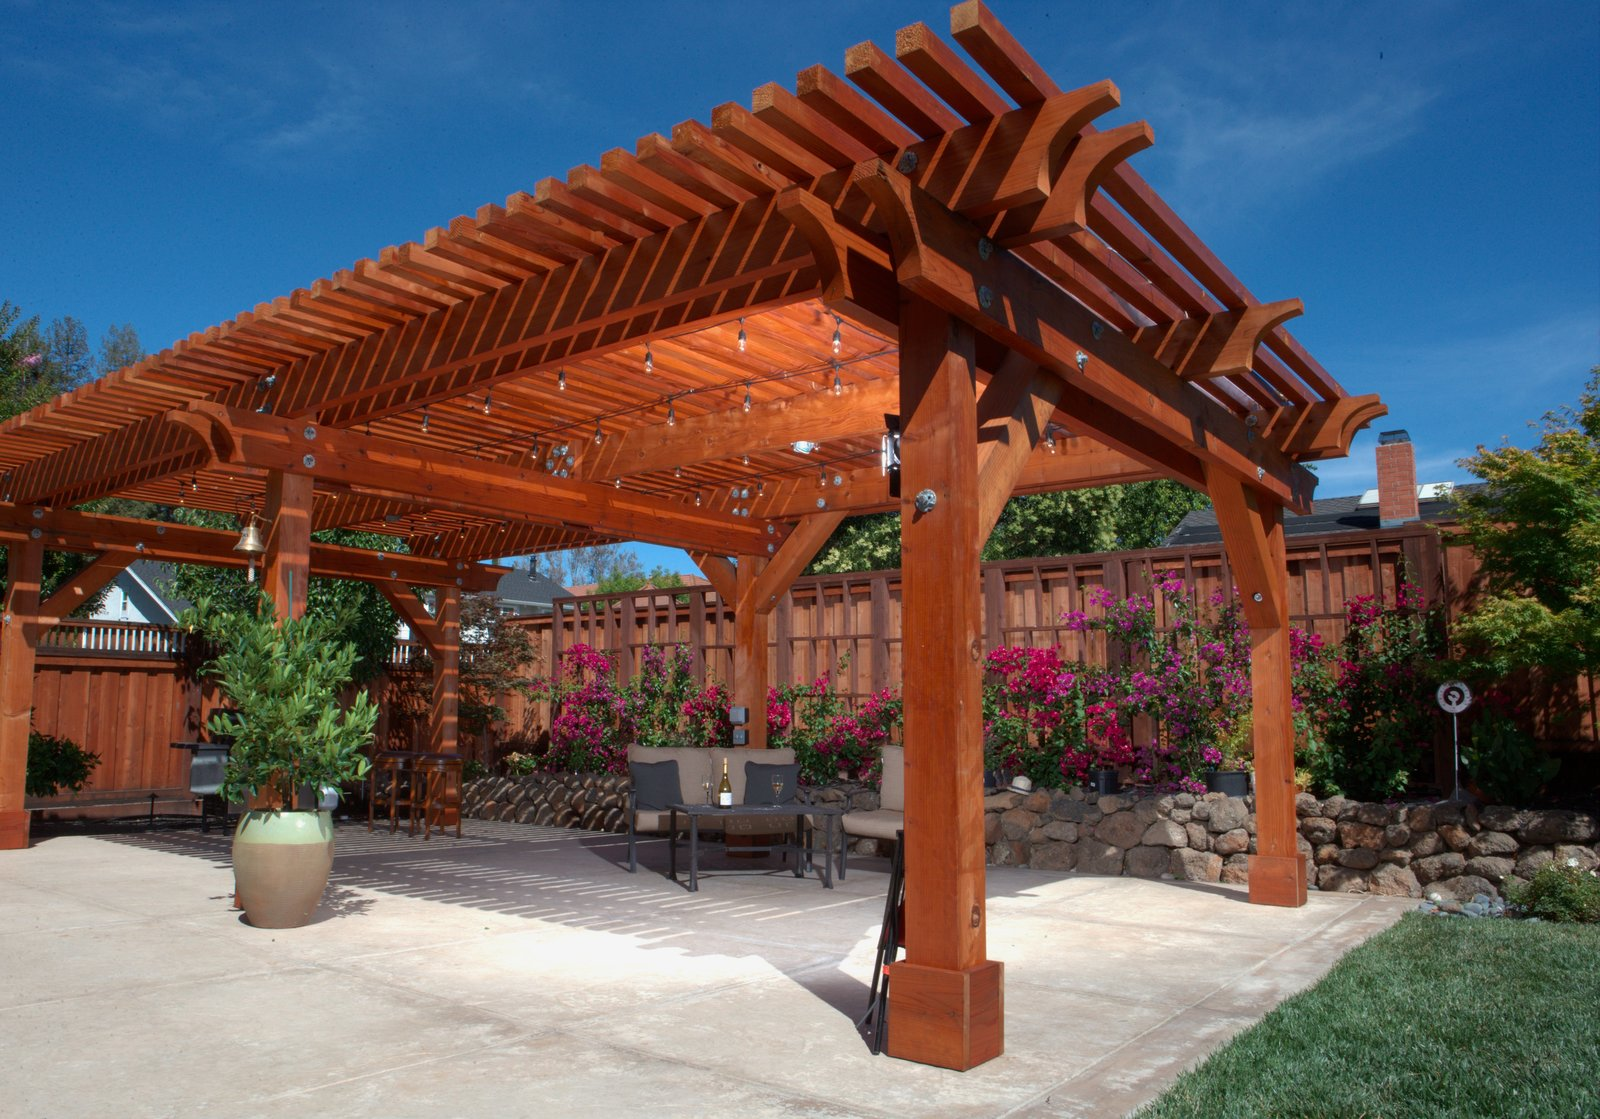 A versatile material, redwood can be left to turn a rustic, silver-tone gray, or finished to take on a glowing tint. A pergola such as this one, which will accompany Humboldt Redwood Company at Dwell on Design, can imbue your backyard space with both stateliness and charm.  Pergolas